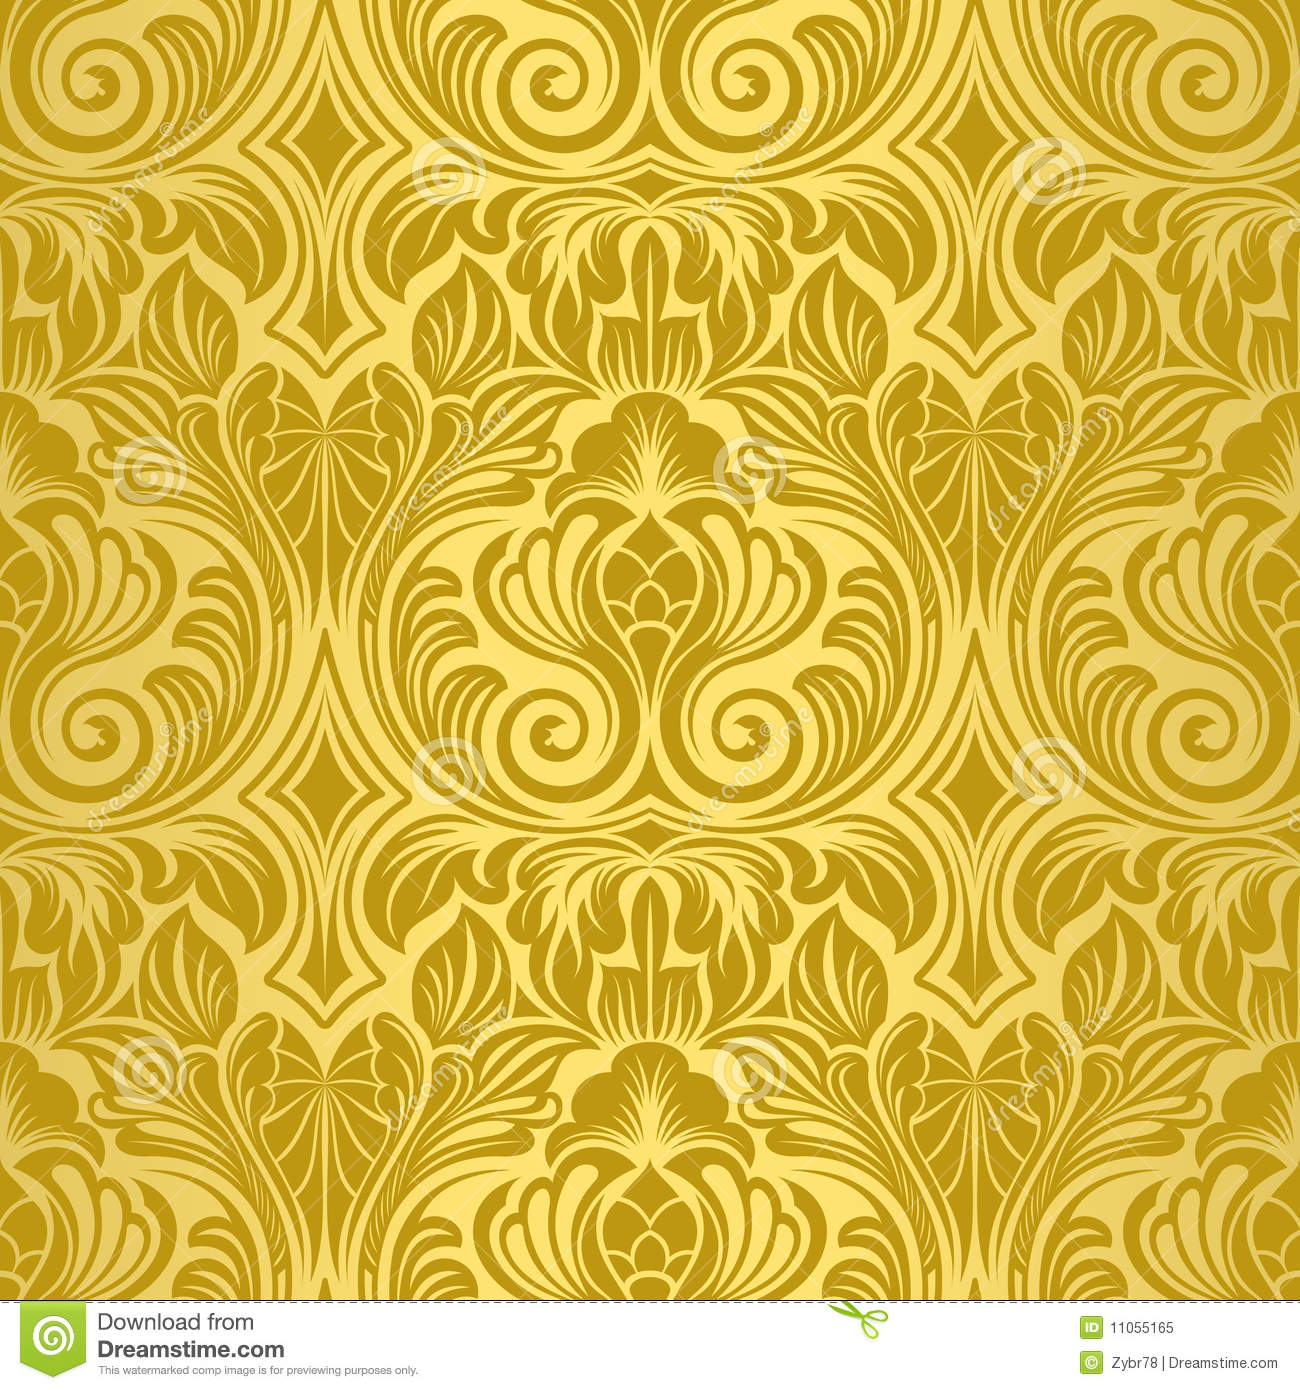 Golden Design Wallpaper : Gold seamless wallpaper royalty free stock photo image